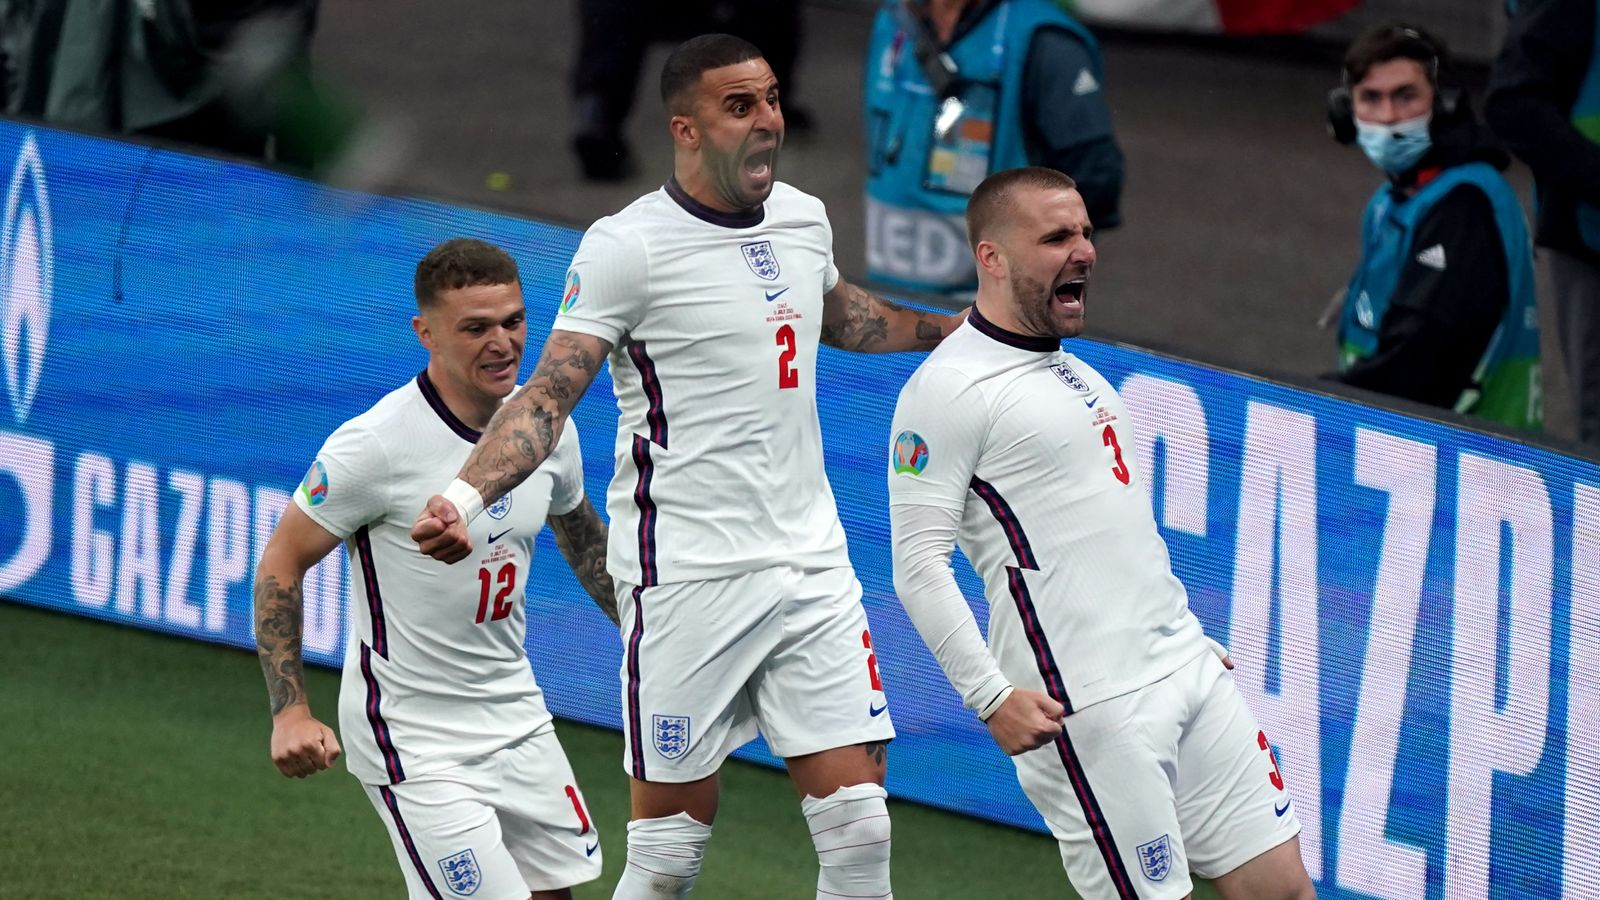 Euro 2020 final: England 1-0 up against Italy as Luke Shaw smashes home from close range